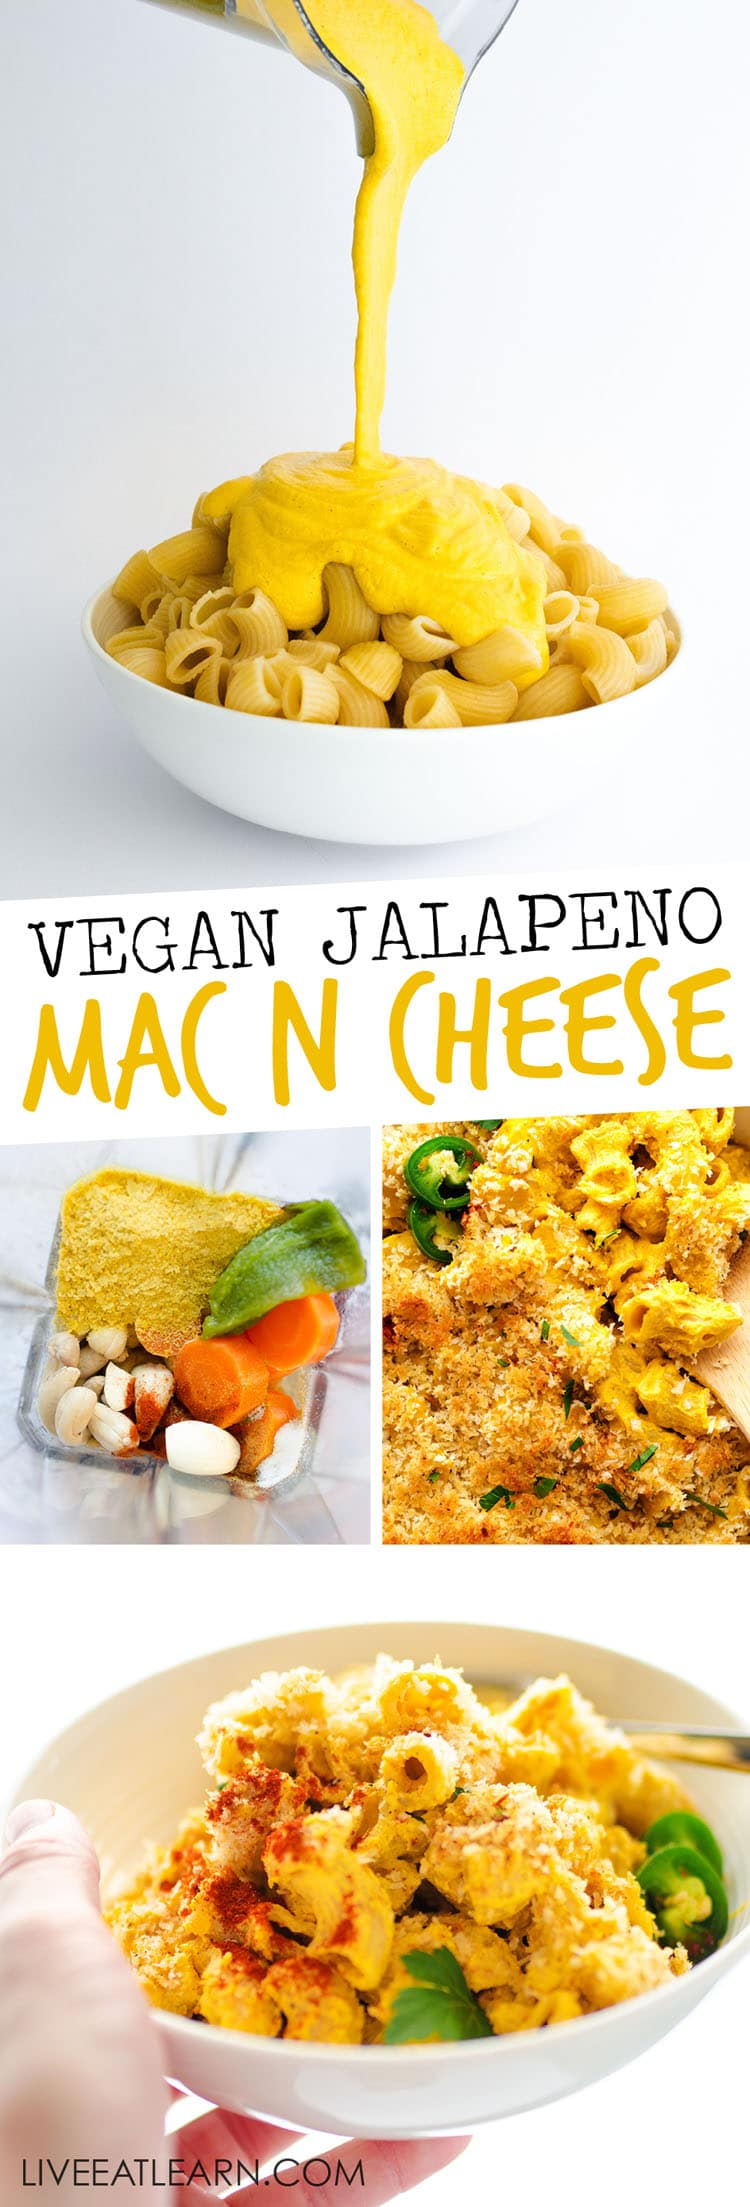 Cheesy, crispy, and ultra-creamy…you need this Smoky Jalapeno Vegan Mac 'n' Cheese recipe in your life. Topped with crispy panko breadrcumbs and held together with a rich, cheesy cashew sauce, your family will be shocked with they find out it's dairy-free and vegan! #vegan #vegetarian #dairyfree #dinner #sidedish #healthyrecipes